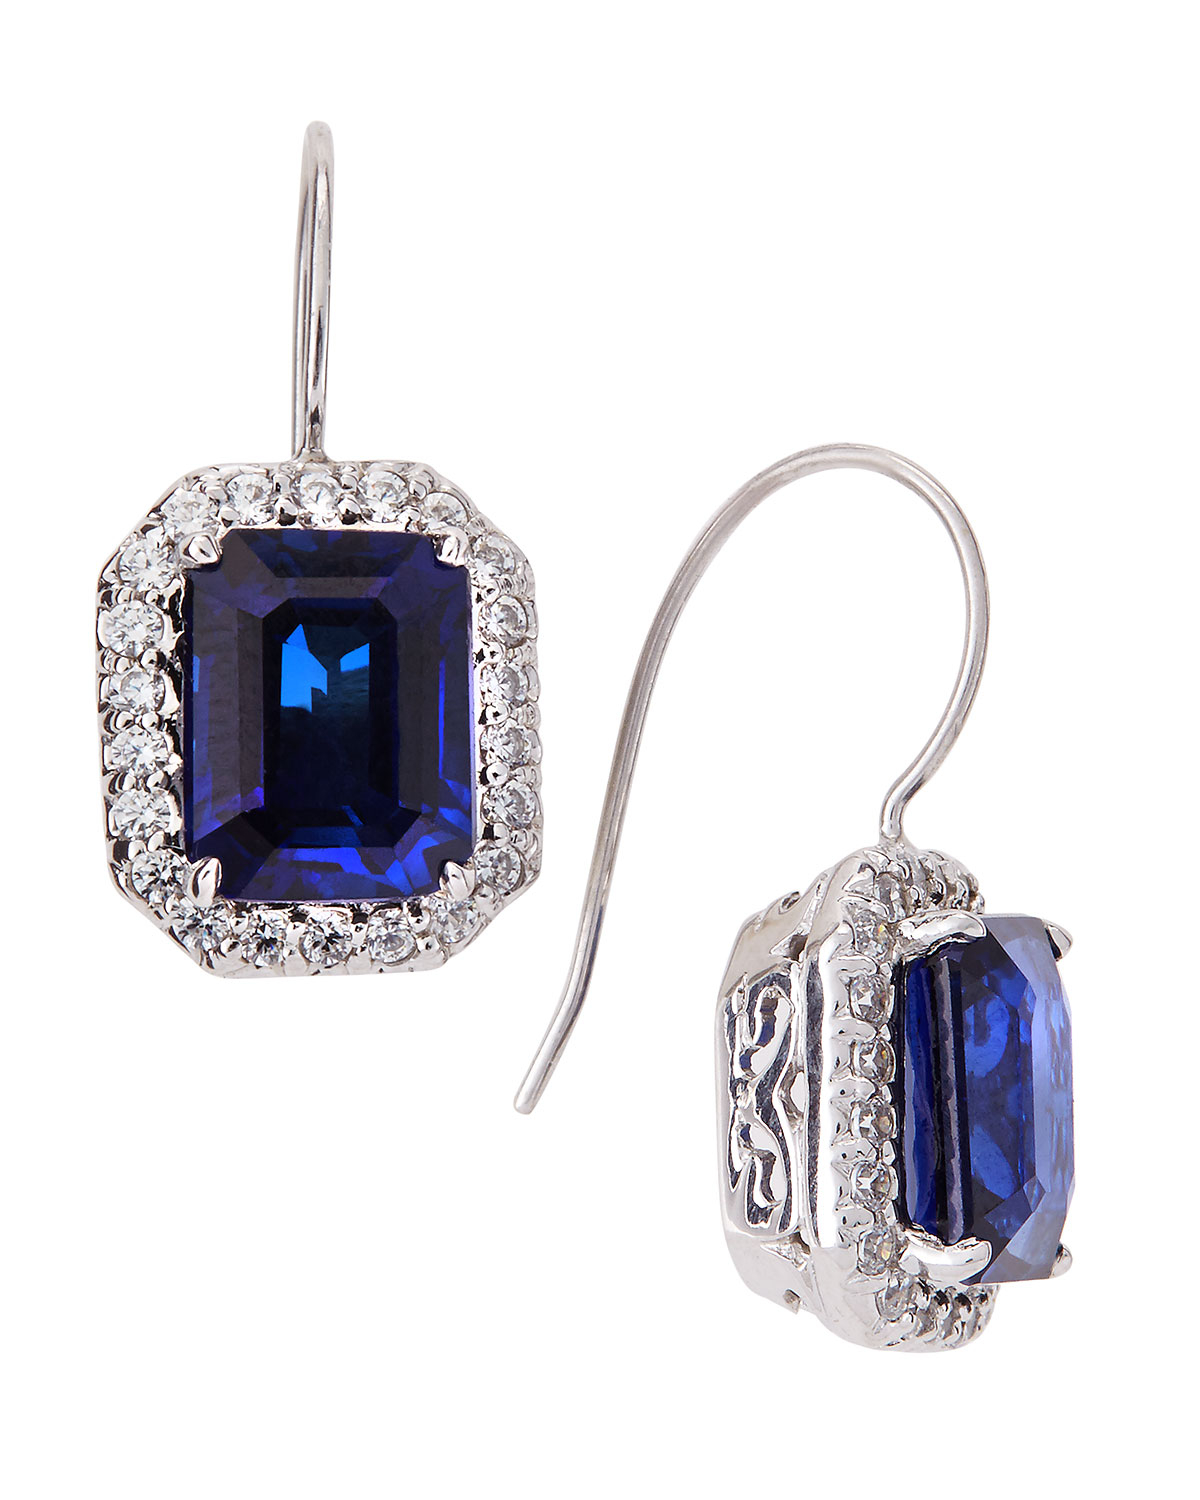 Fantasia Marquise Cluster Cubic Zirconia & Synthetic Sapphire Earrings g9C8ako